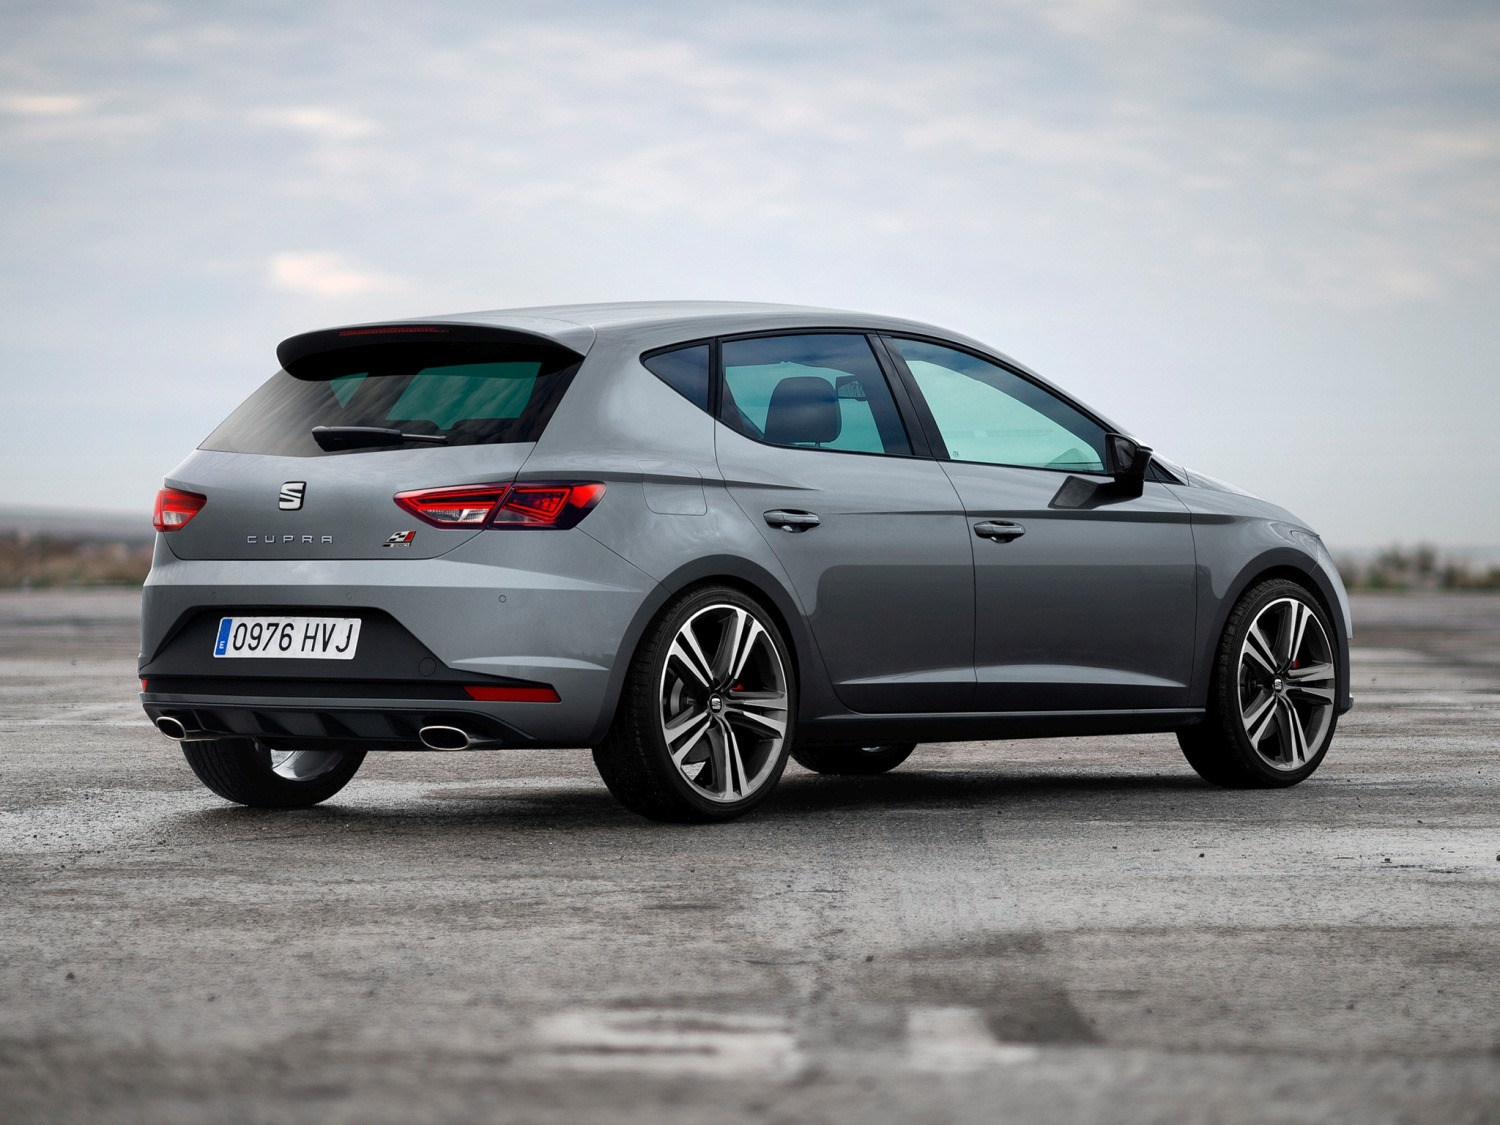 seat leon iii cupra 2014 p gina 19 forocoches. Black Bedroom Furniture Sets. Home Design Ideas